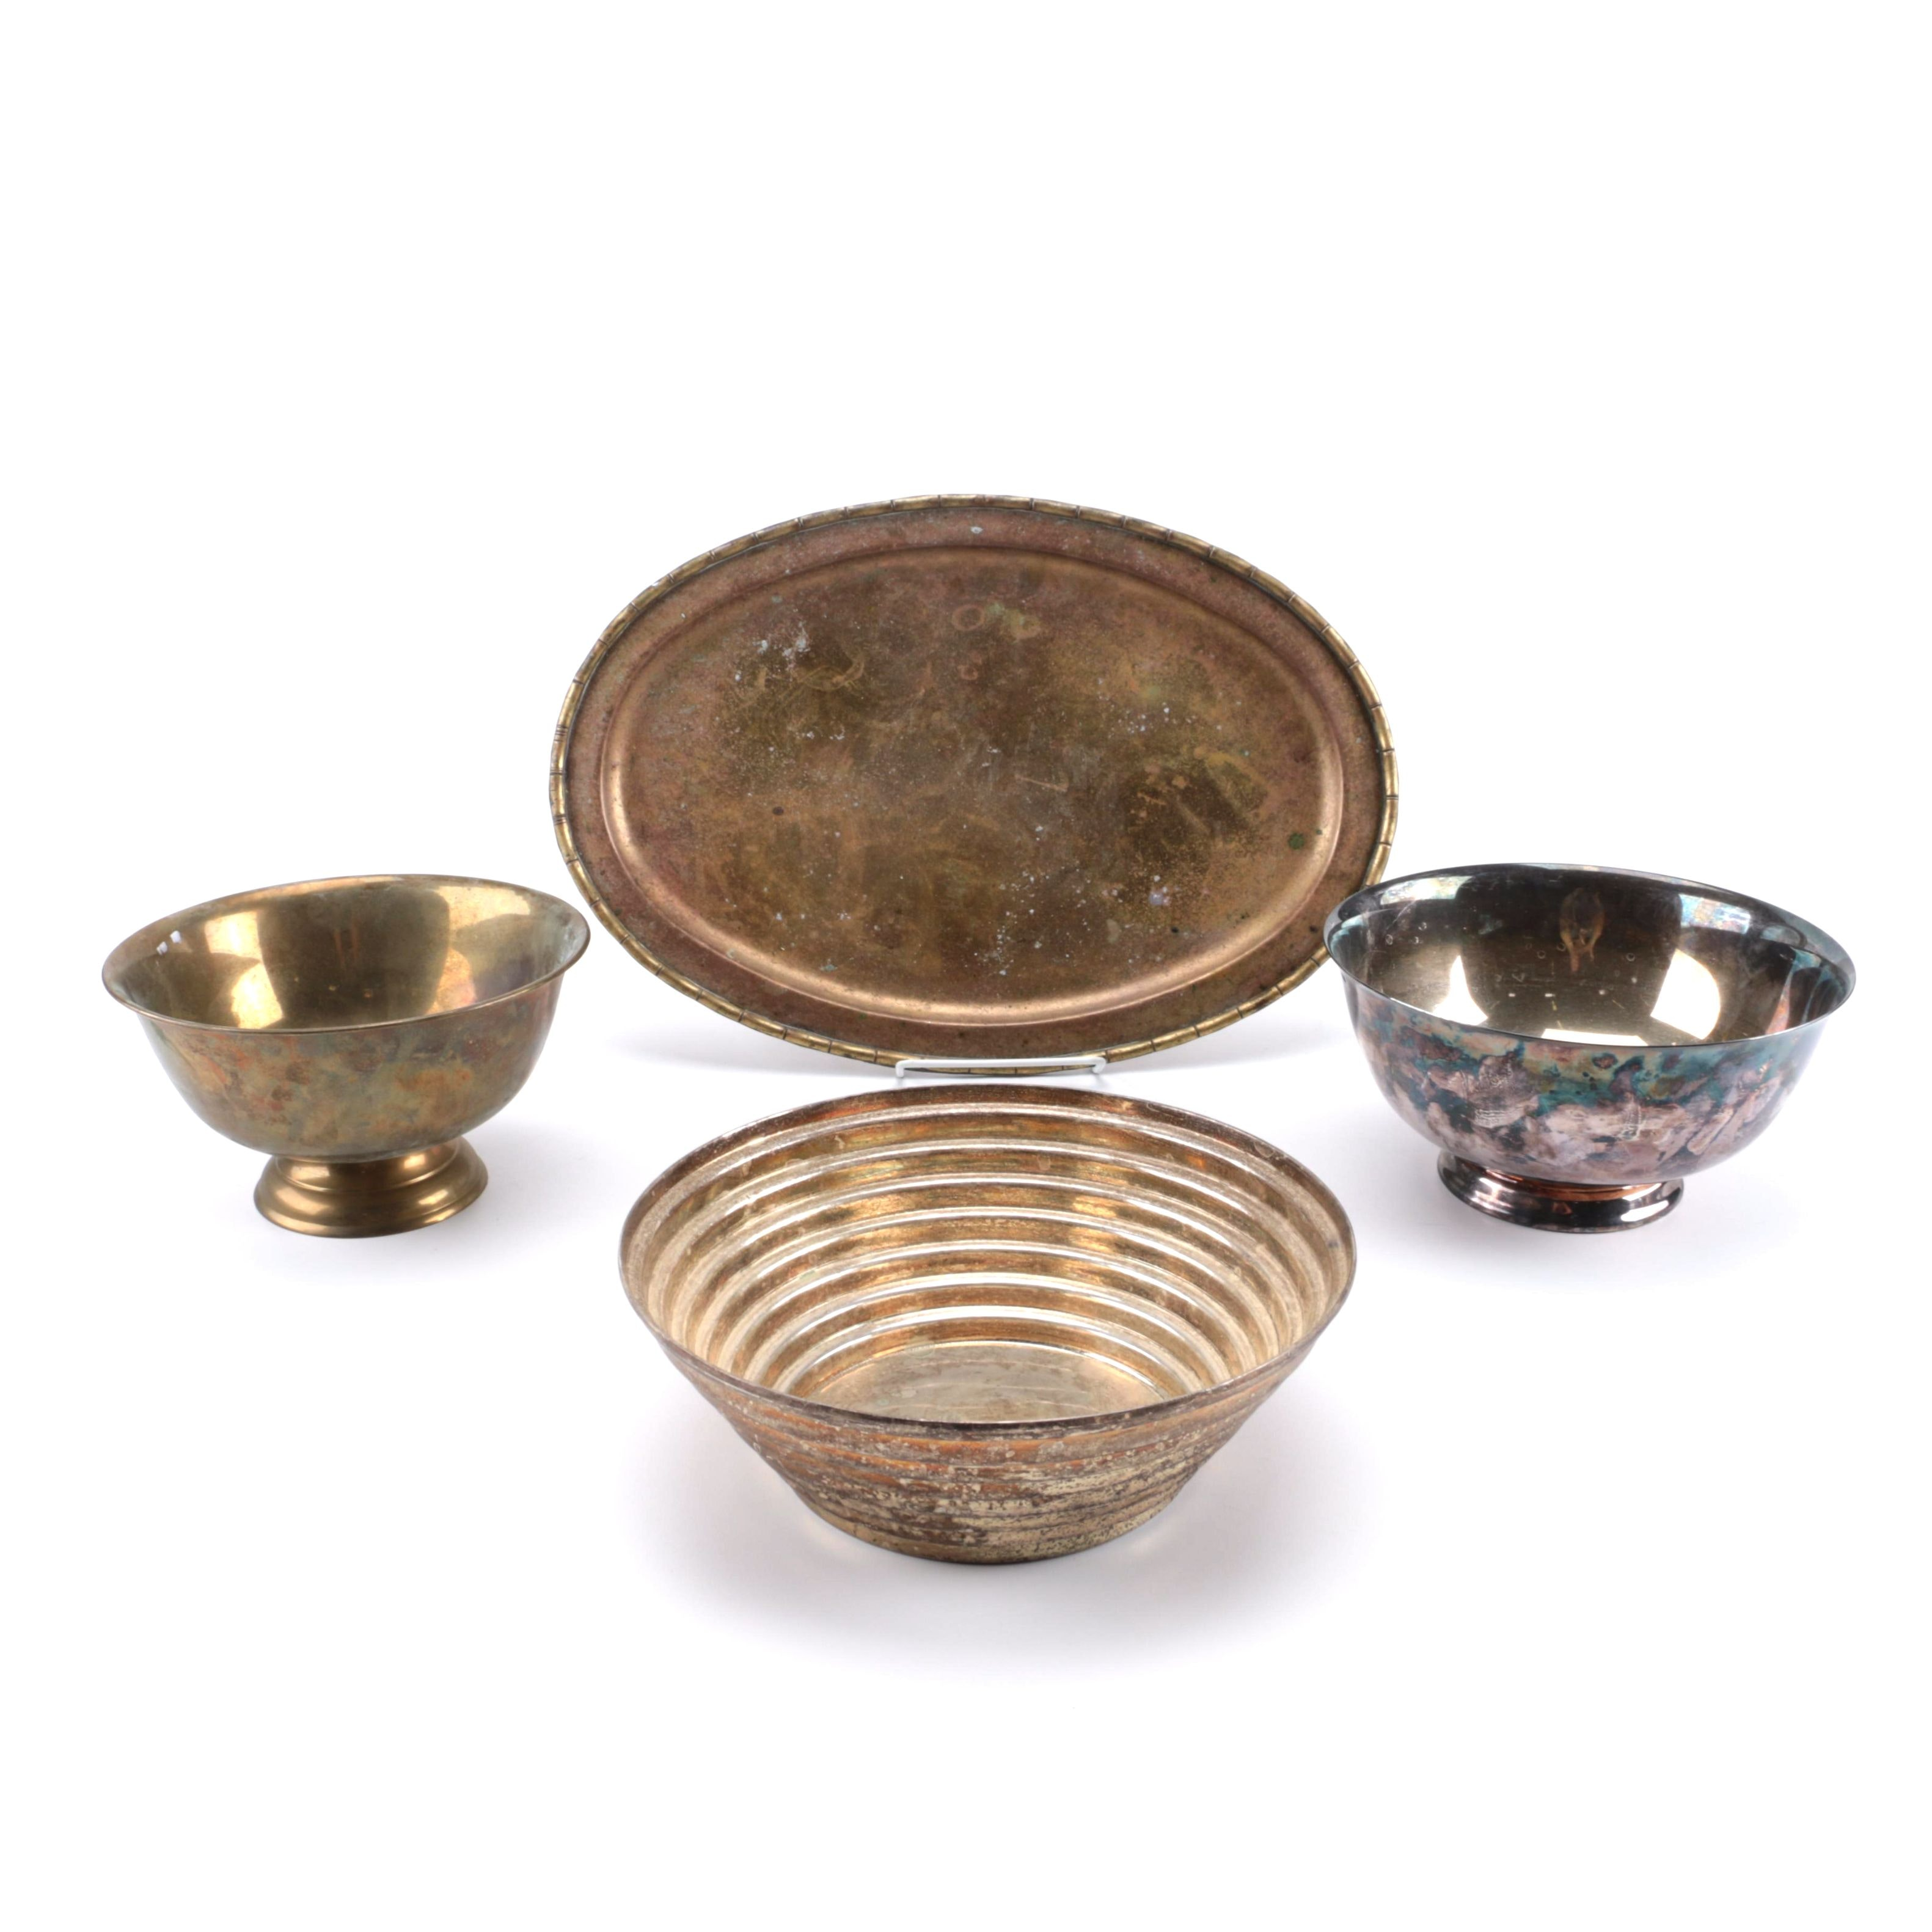 Silverplate Bowls And Brass Tray